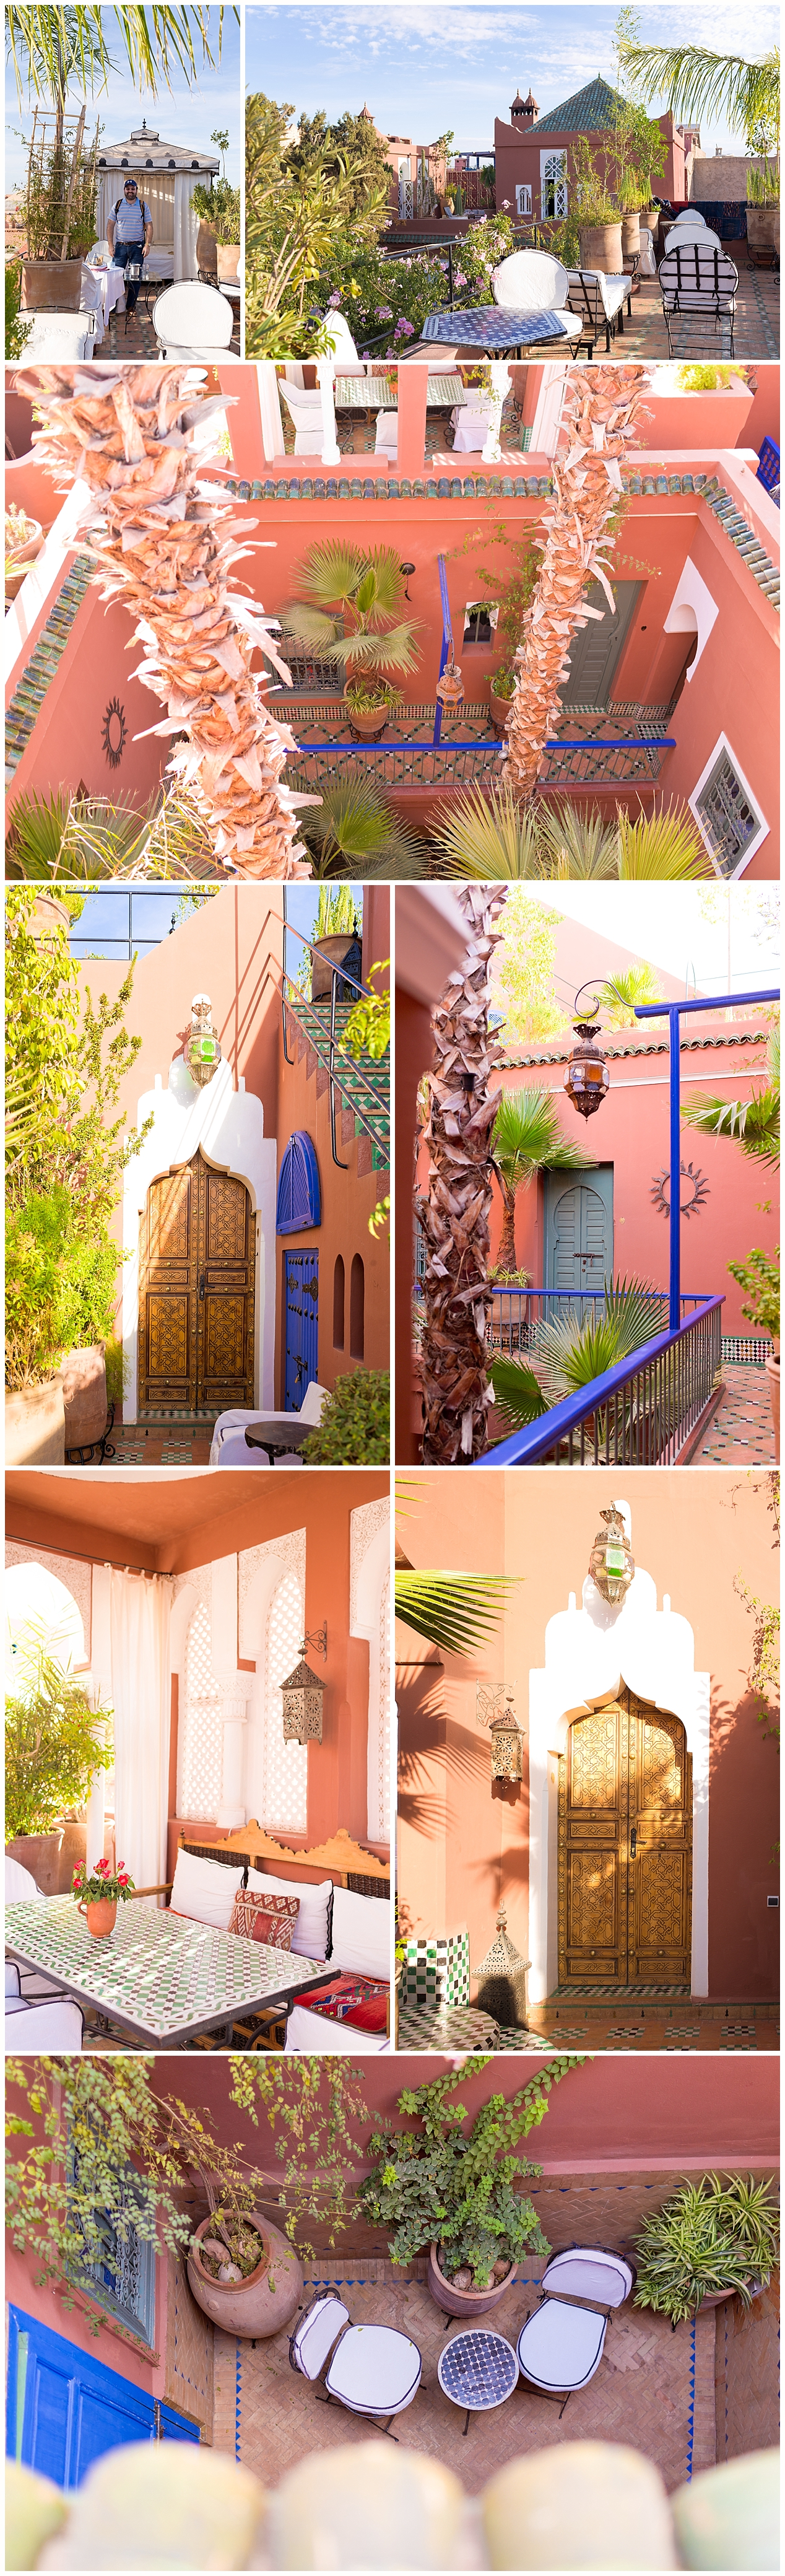 beautiful ancient Moroccan architecture at Riad Kaiss - Marrakech restaurant review